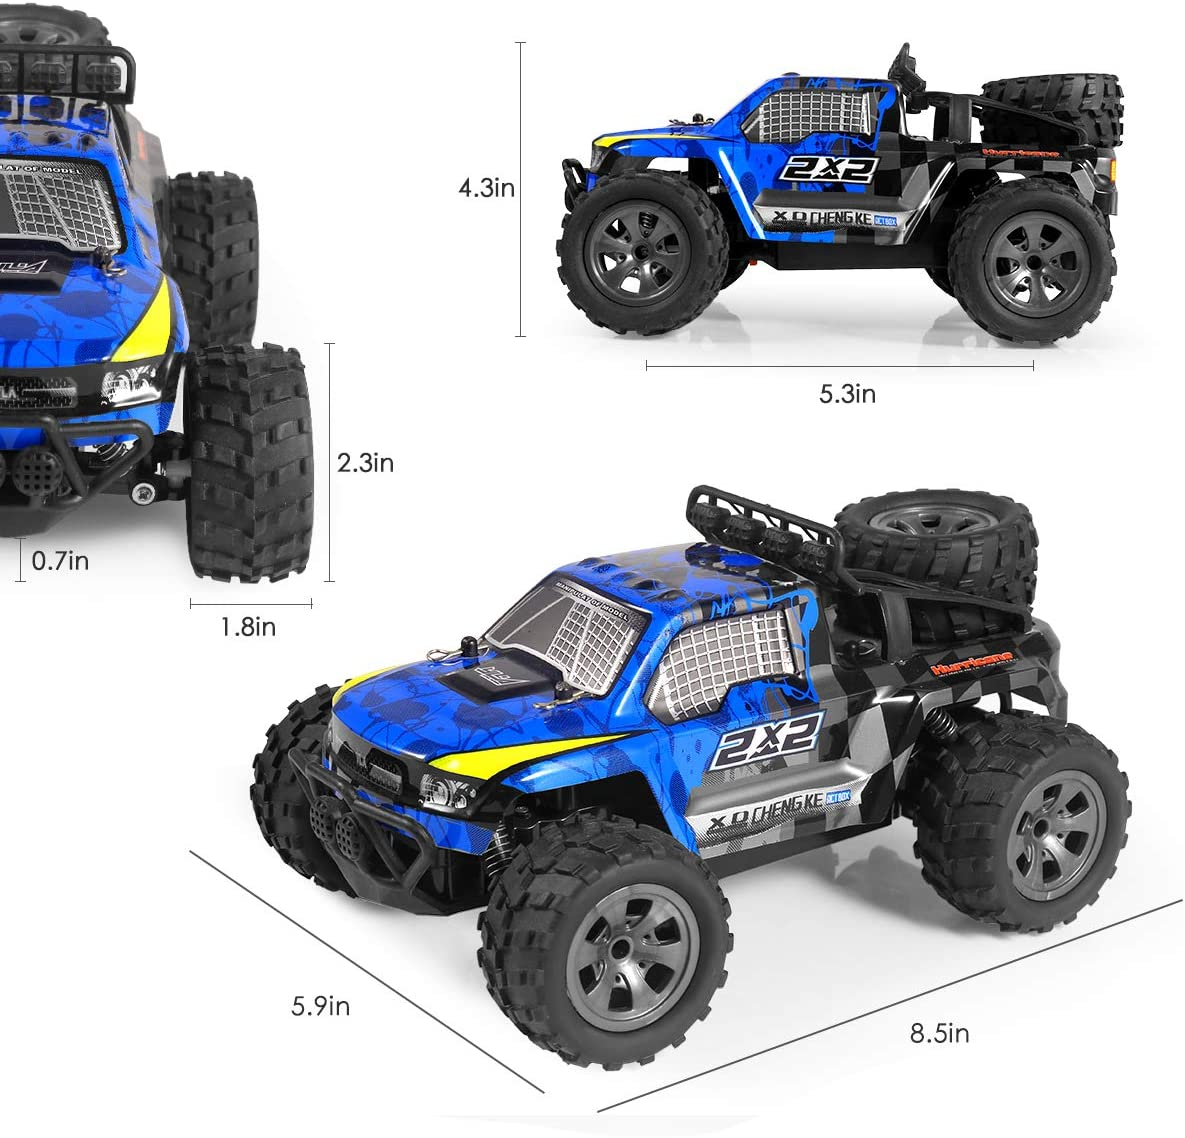 2.4Ghz 4WD Off Road Rock Crawler Vehicle 1:18 All Terrain Rechargeable Electric Toy for Boys /& Girls Gifts Remote Control Car Off Road Truck RC Car